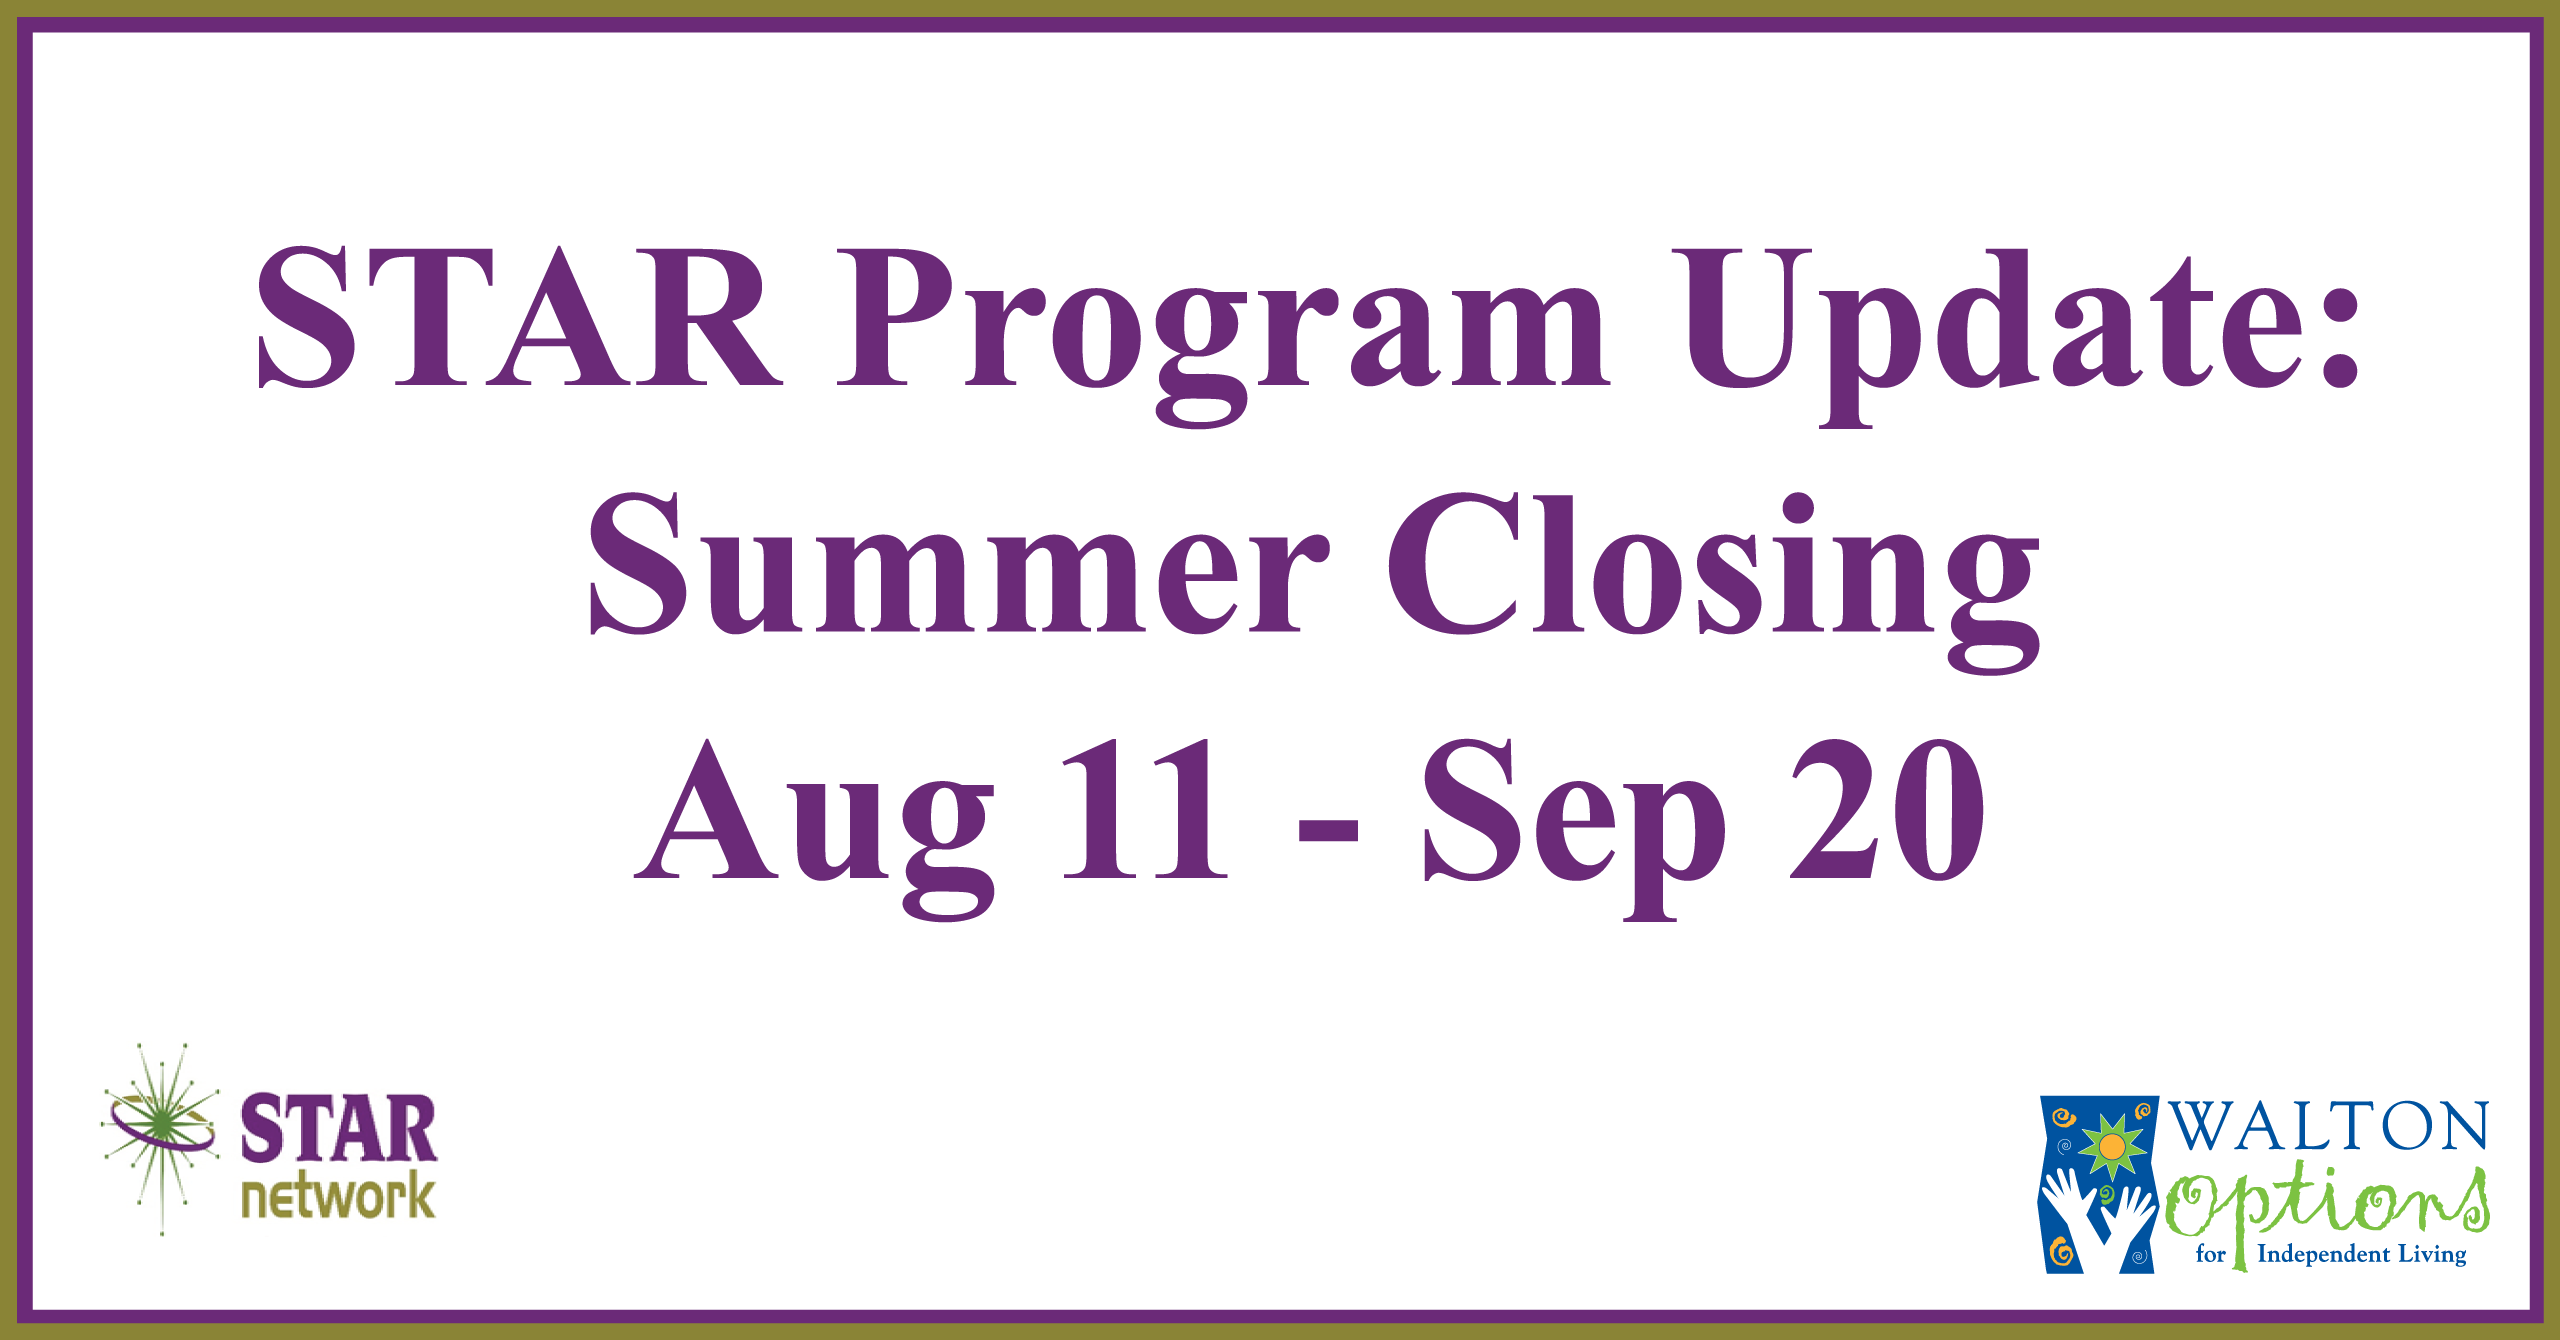 White box with purple text: STAR Program Update: Summer Closing, Aug 11 - Sep 20. The STAR Program and Walton Options logos are in the bottom left and right corners respectively.